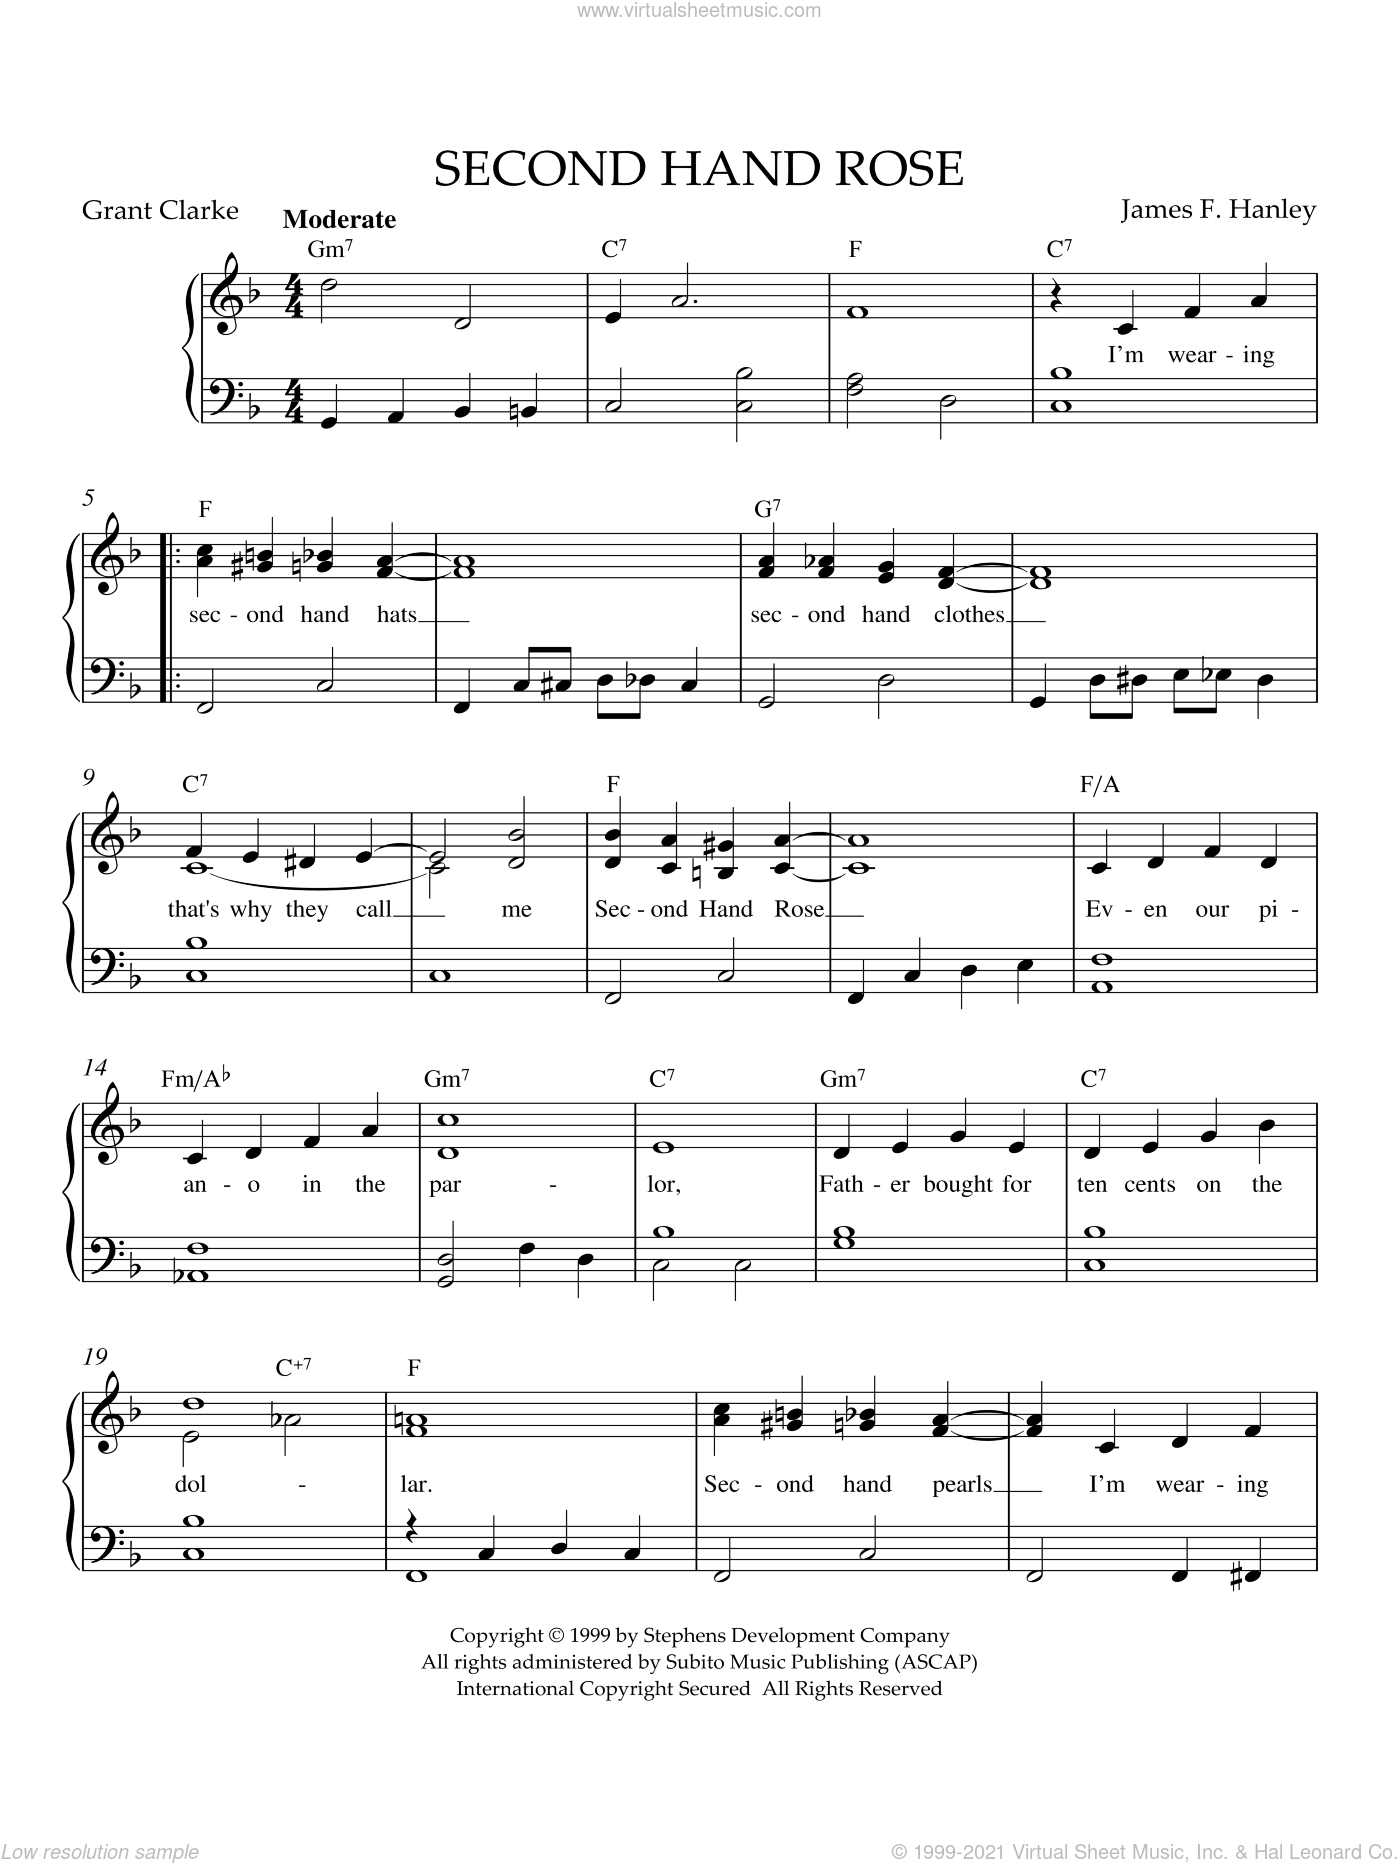 Second Hand Rose sheet music for piano solo by James Hanley